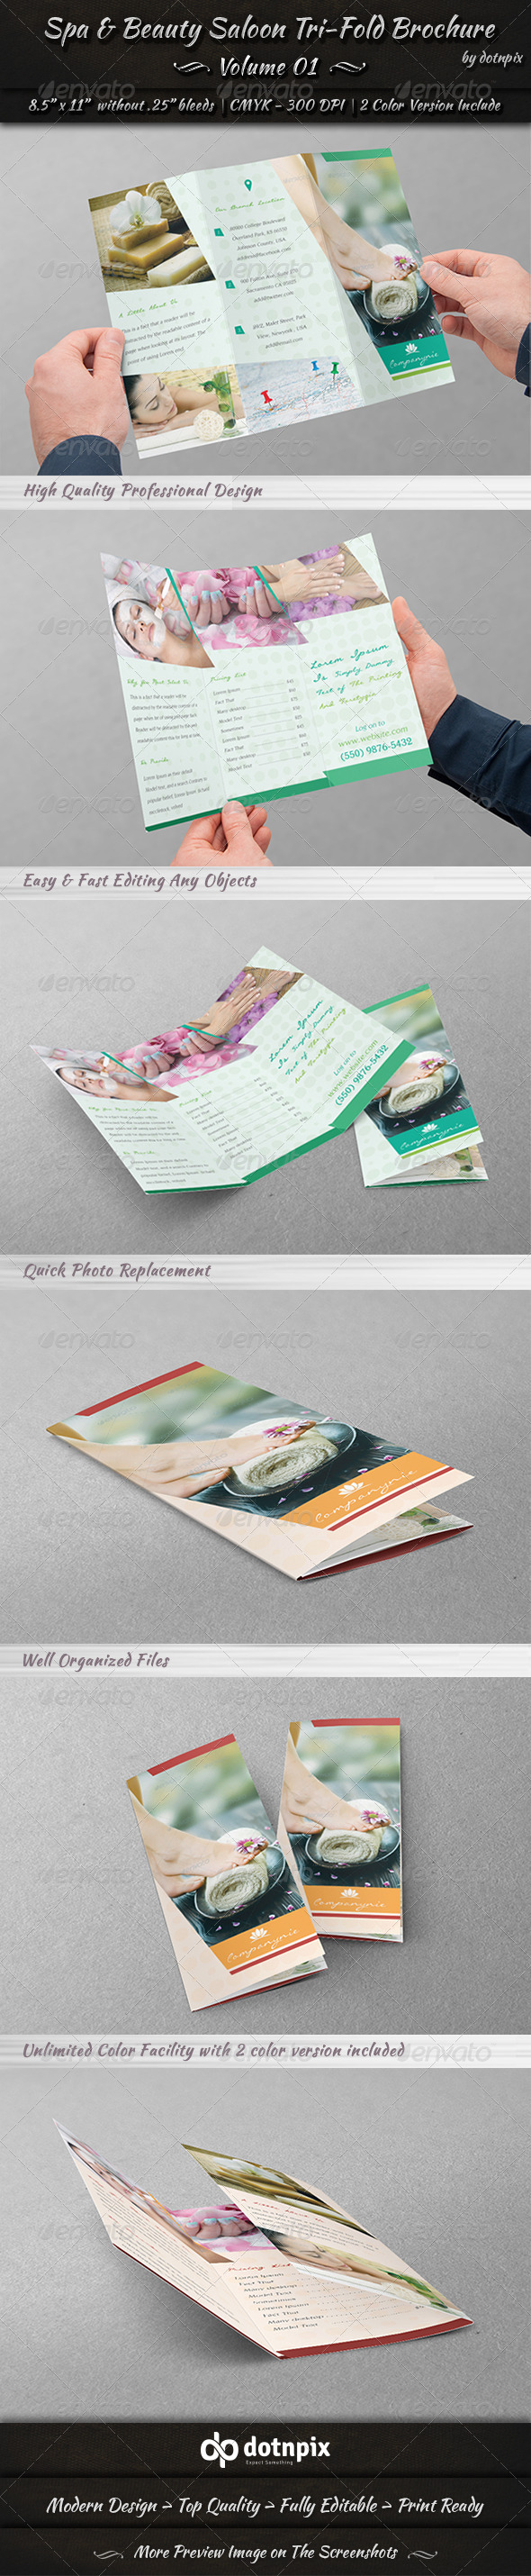 GraphicRiver Spa & Beauty Saloon Tri-Fold Brochure Volume 1 7999679